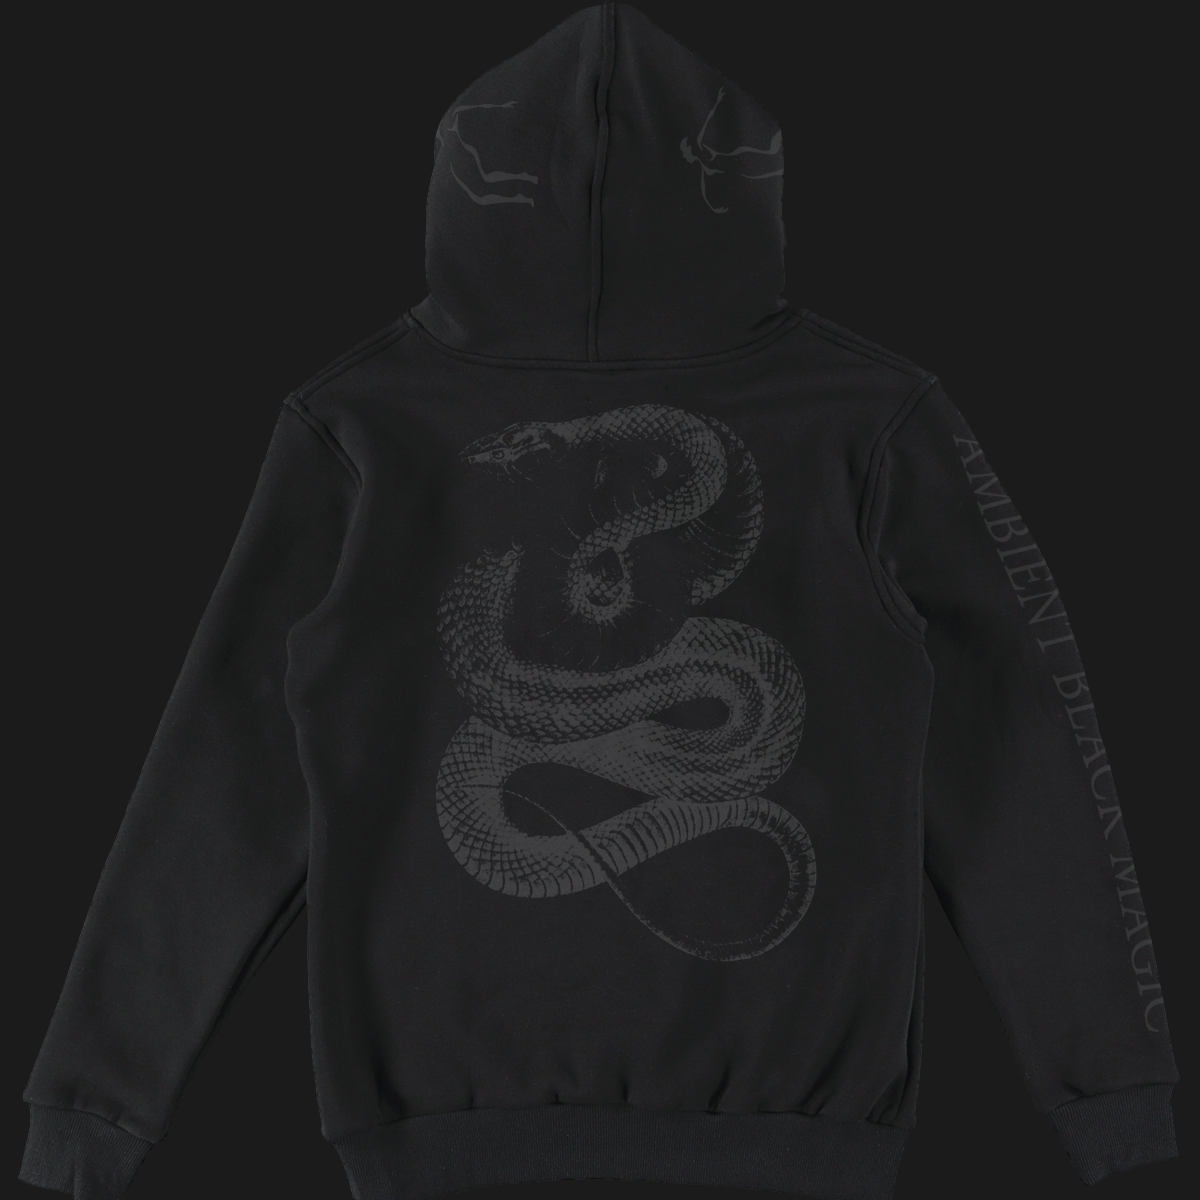 AMBIENT BLACK MAGIC POCKET PRINT HOODIE | BLACK ON BLACK print